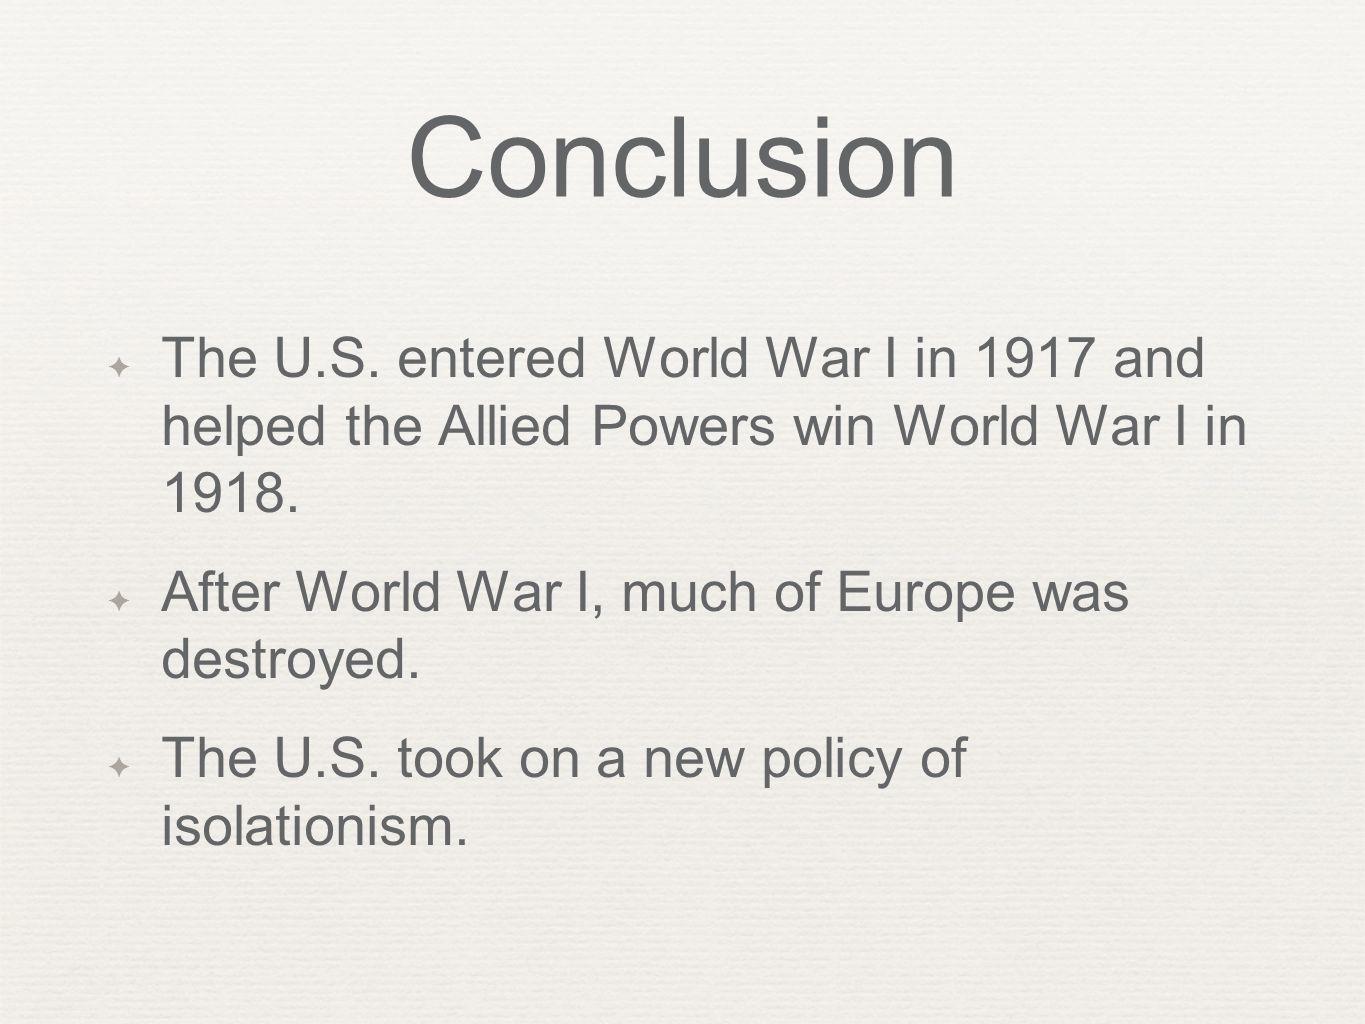 Conclusion The U.S. entered World War I in 1917 and helped the Allied Powers win World War I in 1918.